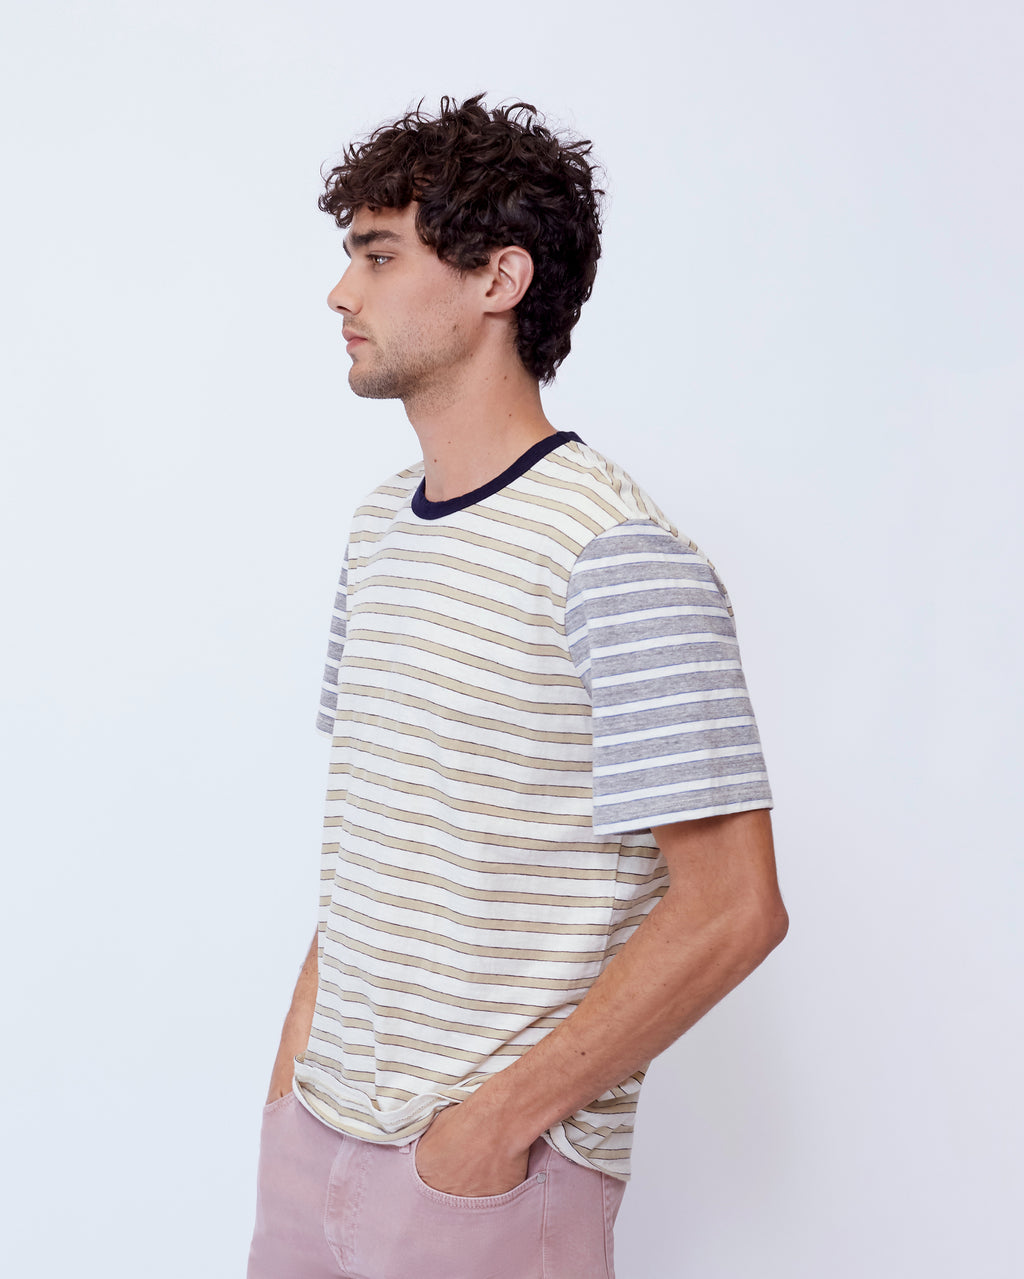 The Sola Tee in Beige Stripe